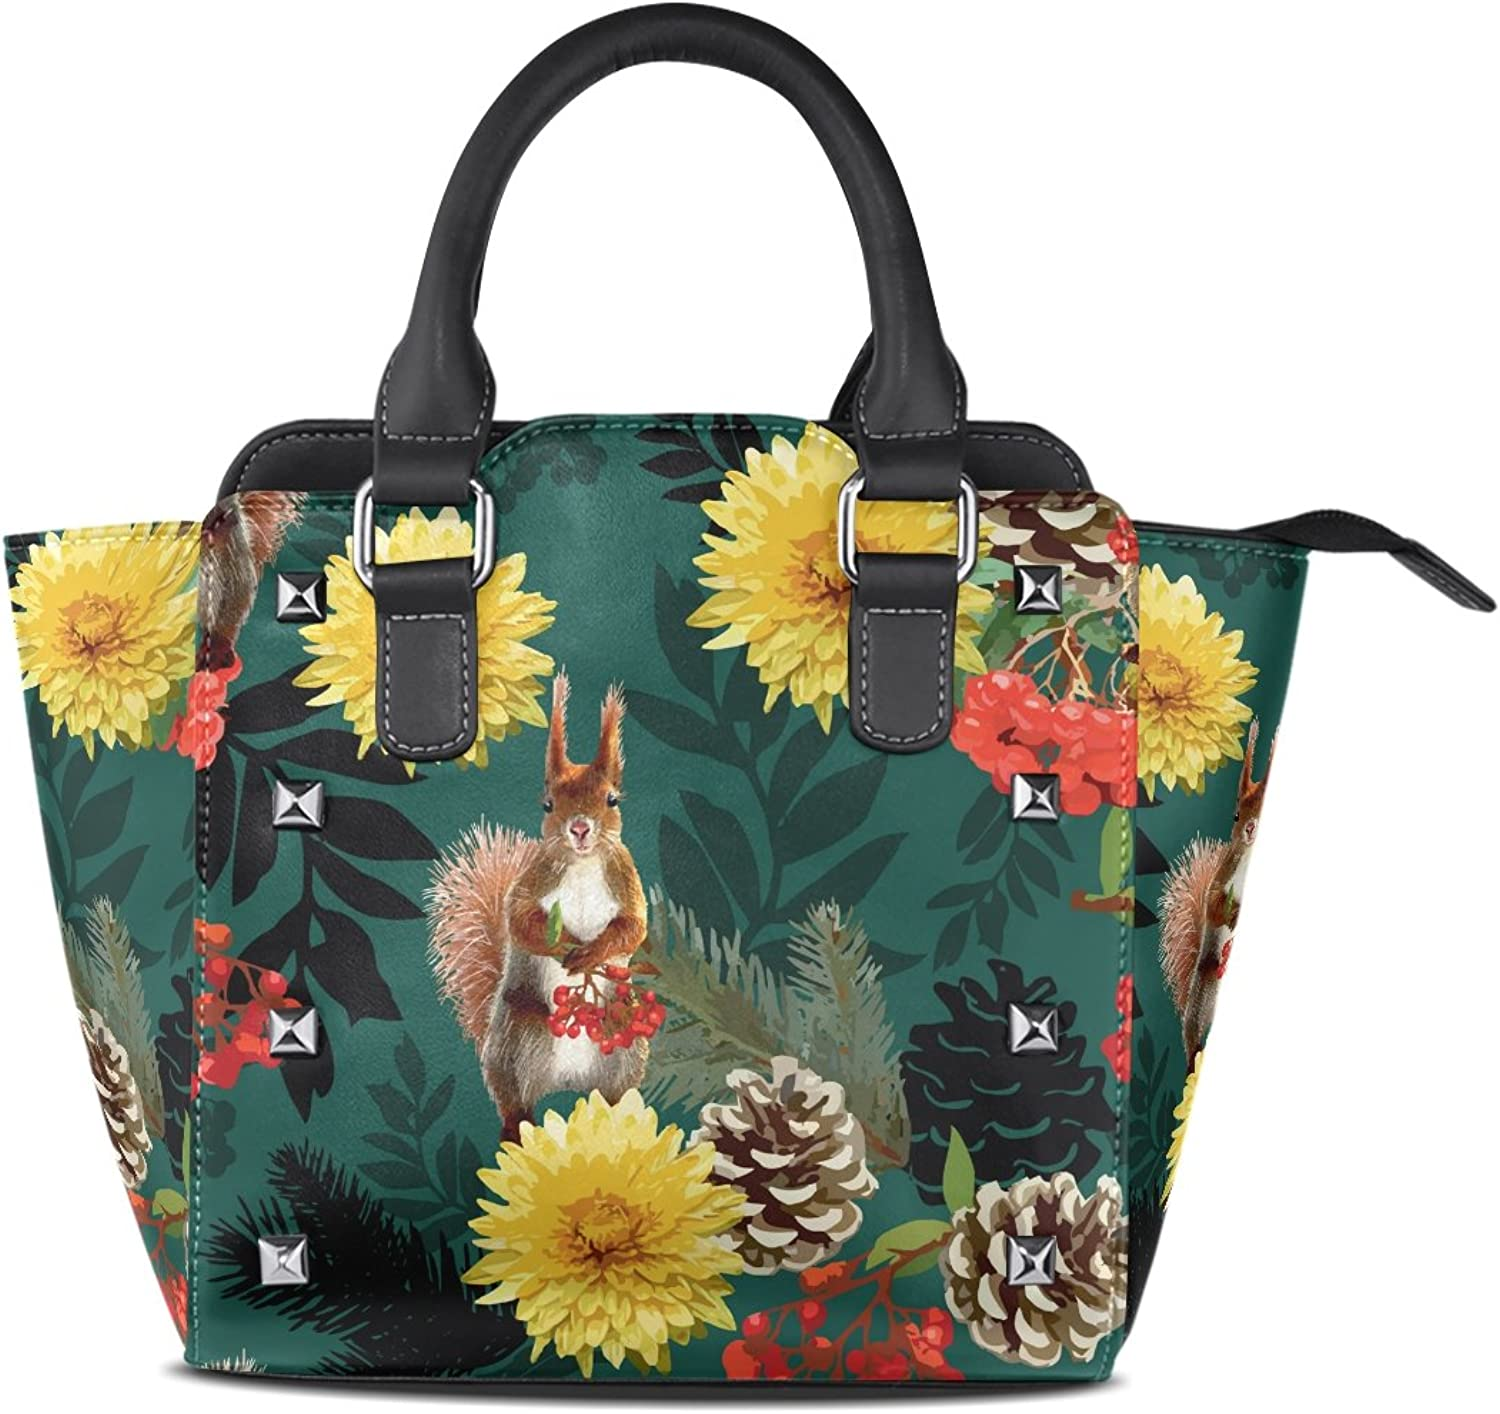 Sunlome Squirrel Flowers and Pine Cone Print Handbags Women's PU Leather Top-Handle Shoulder Bags